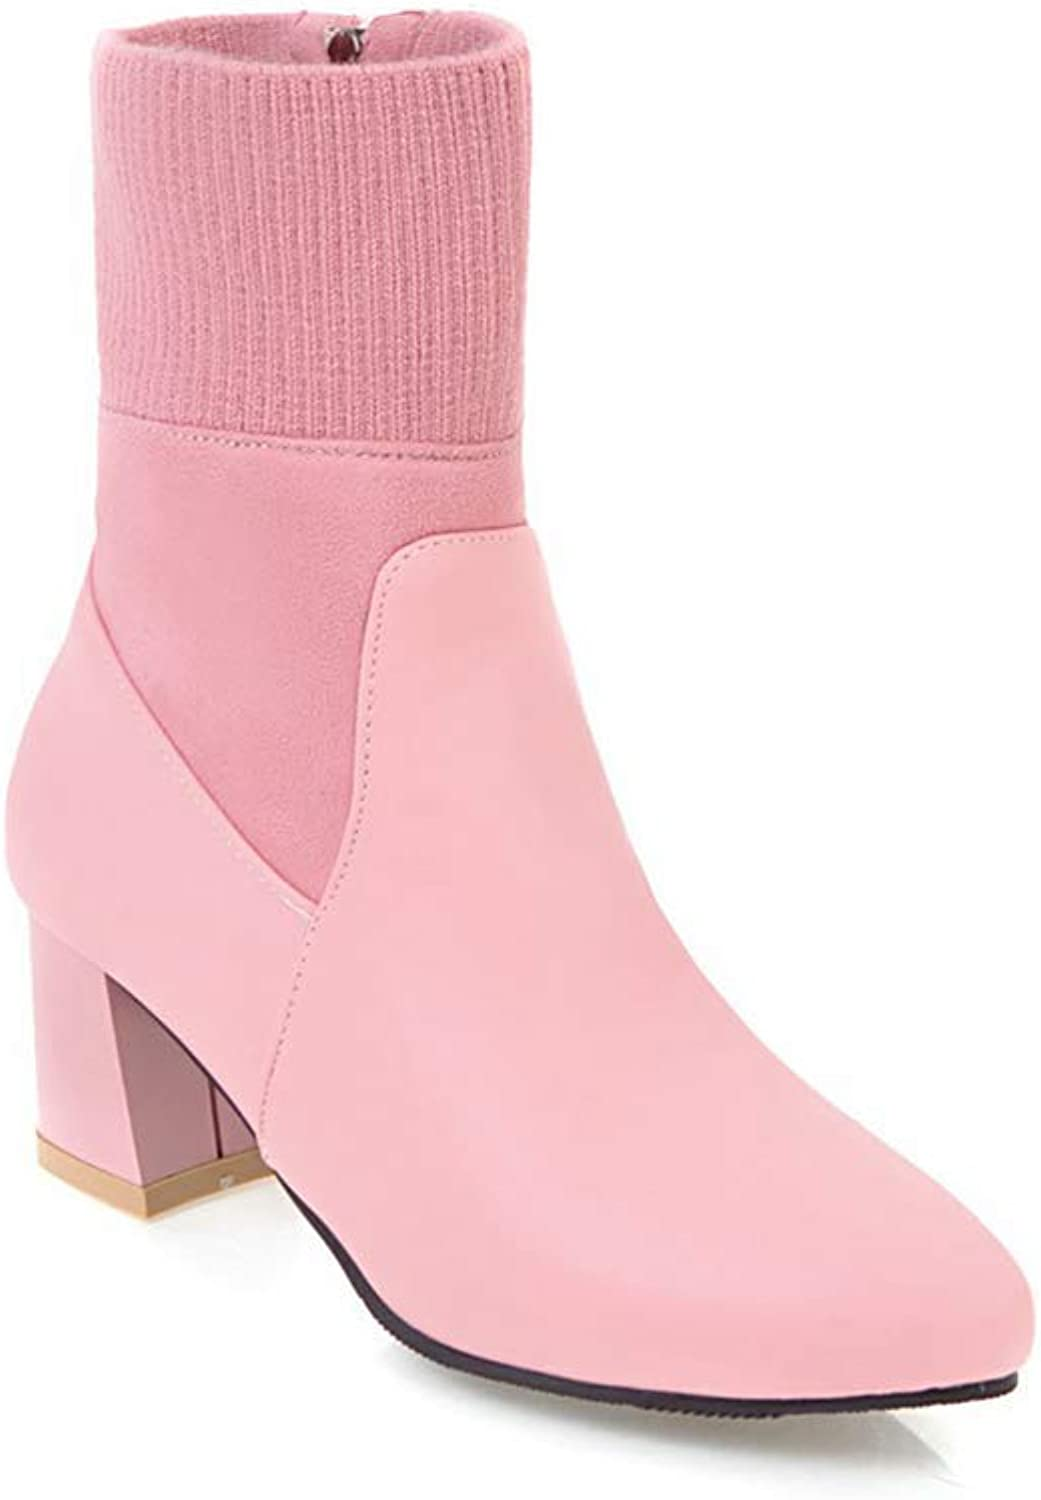 Webb Perkin Women Chunky Square Heel Booties Side Zipper Office Short Boots Lady Ankle Boots Fashion Pointed Toe